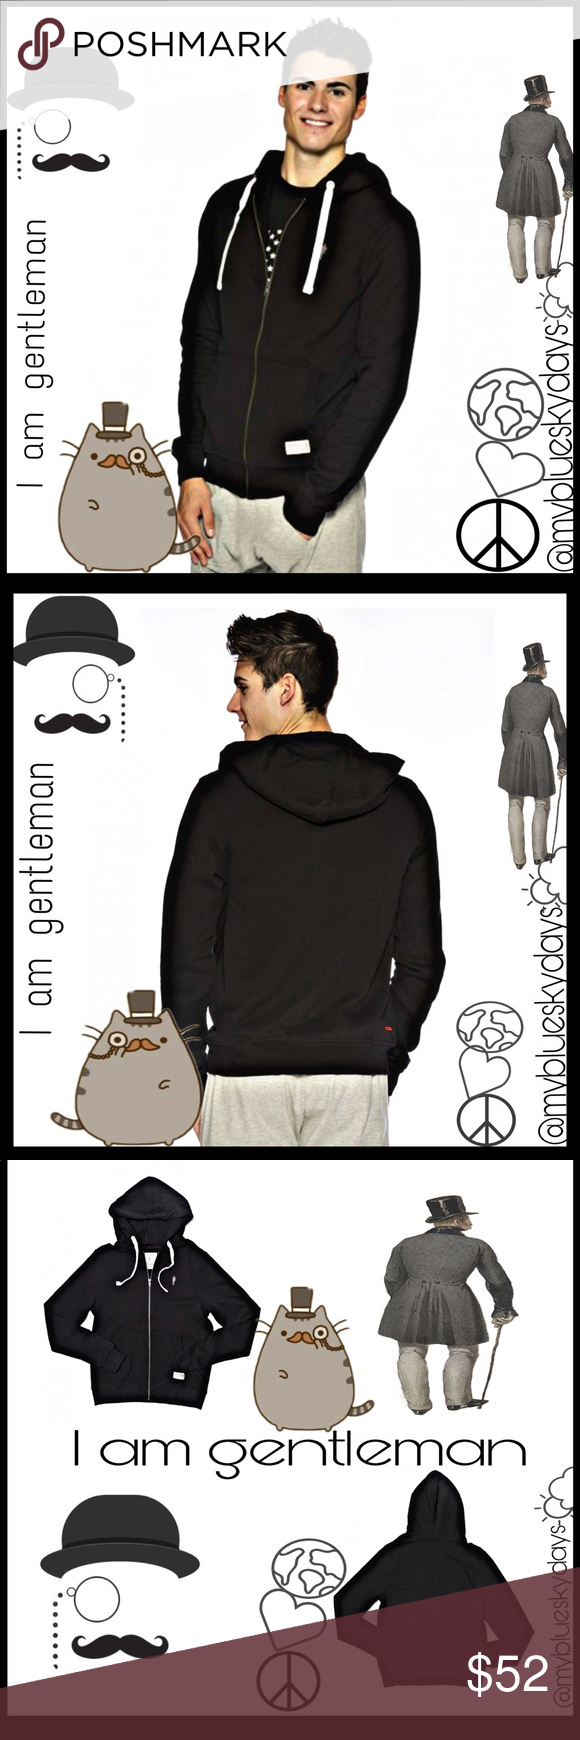 I Am Gentleman Hoodie Awesome Hoodie With A Subtle I Am